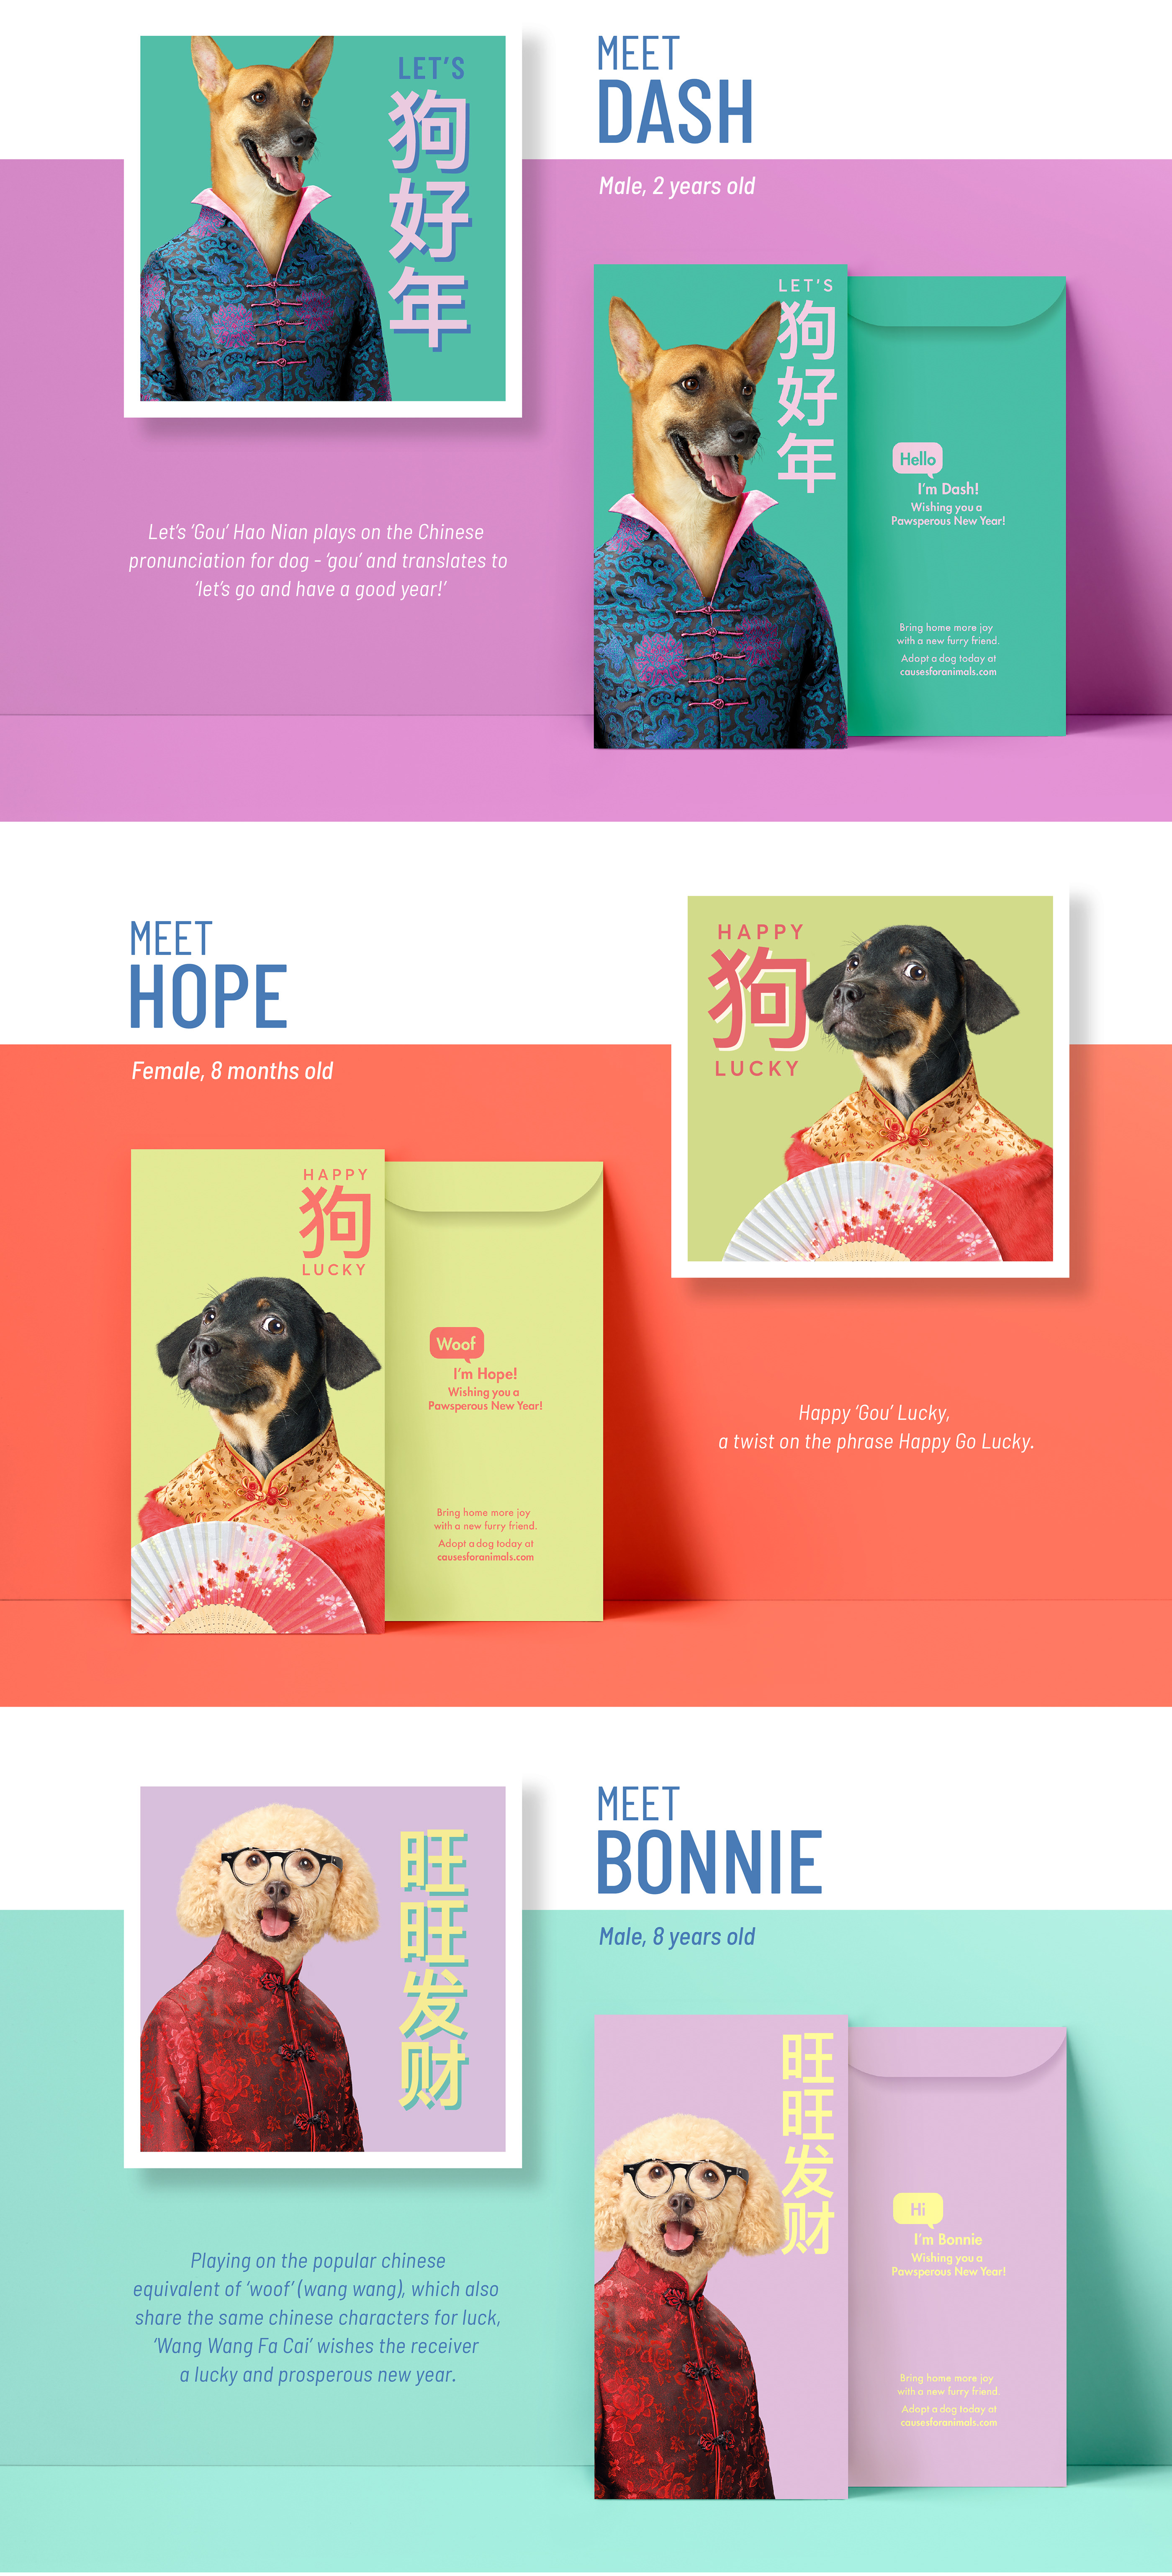 Every dog has its year' – CNY Dog Adoption Project on Behance